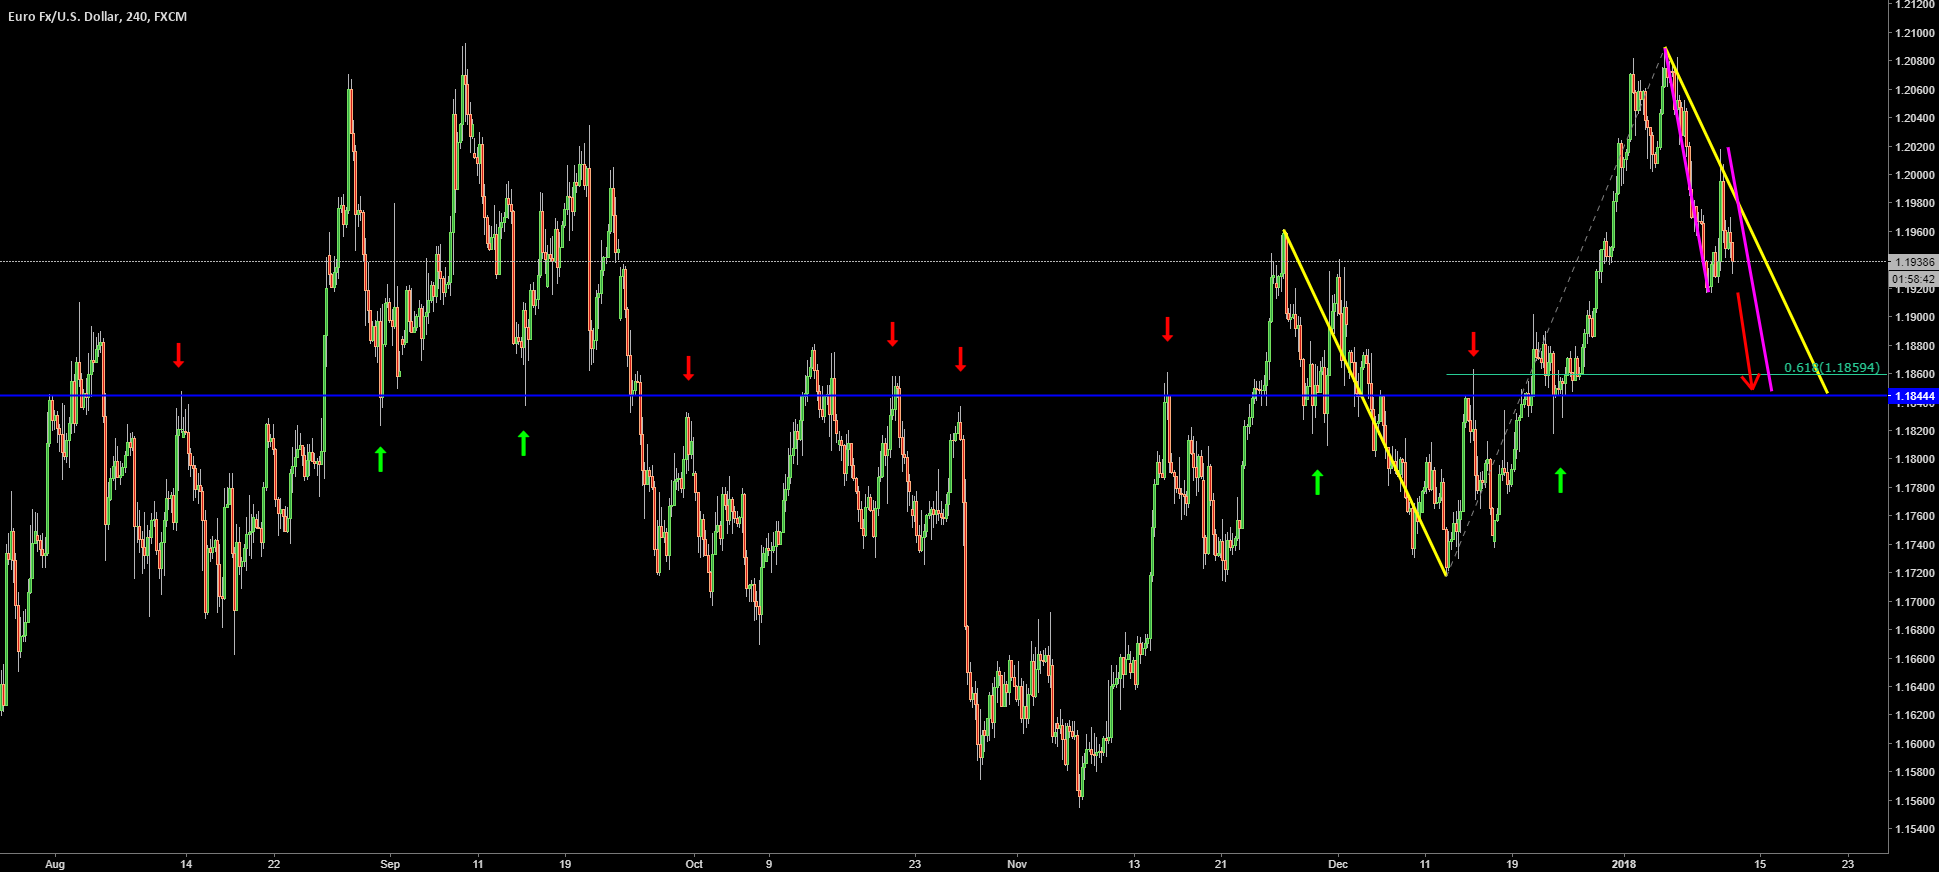 eurusd. higher timeframe analysis